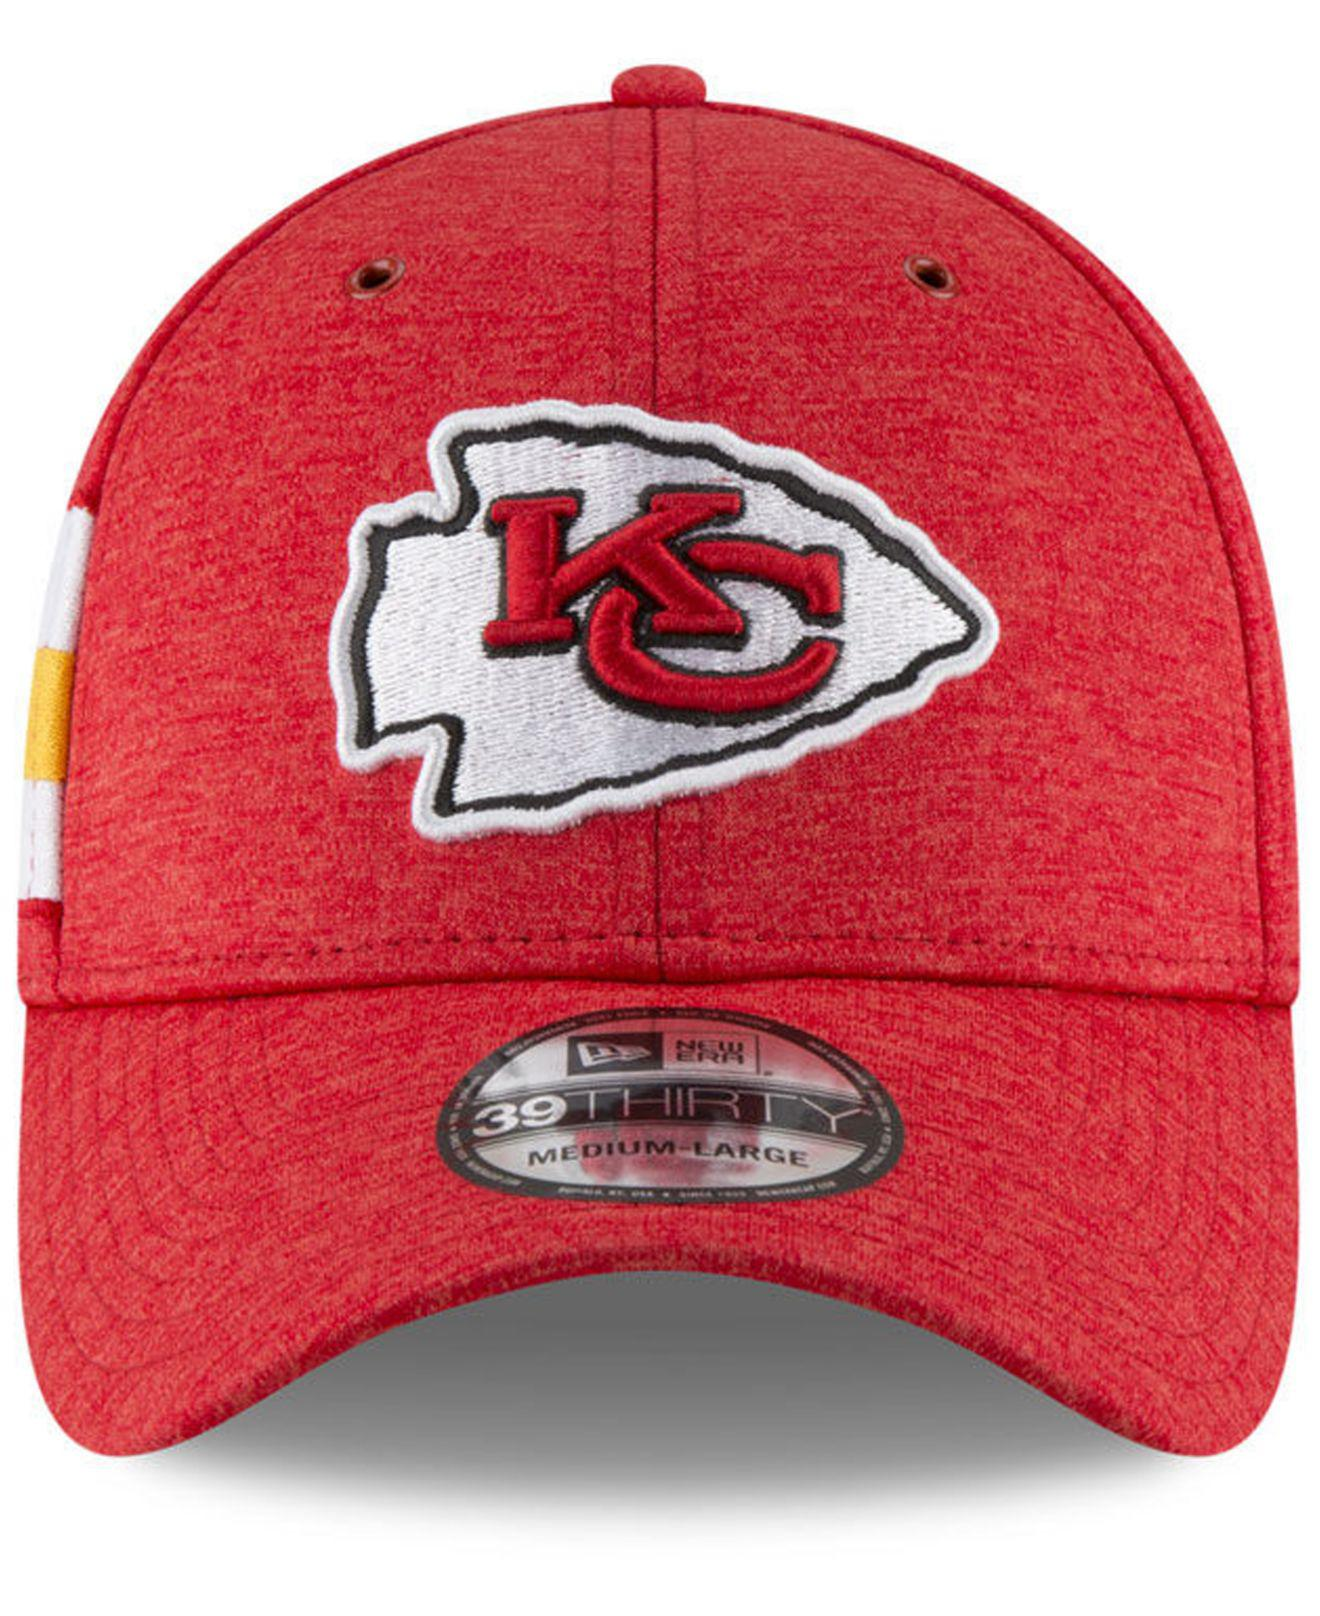 087a5796b0f Lyst - Ktz Kansas City Chiefs On Field Sideline Home 39thirty Cap in Red  for Men